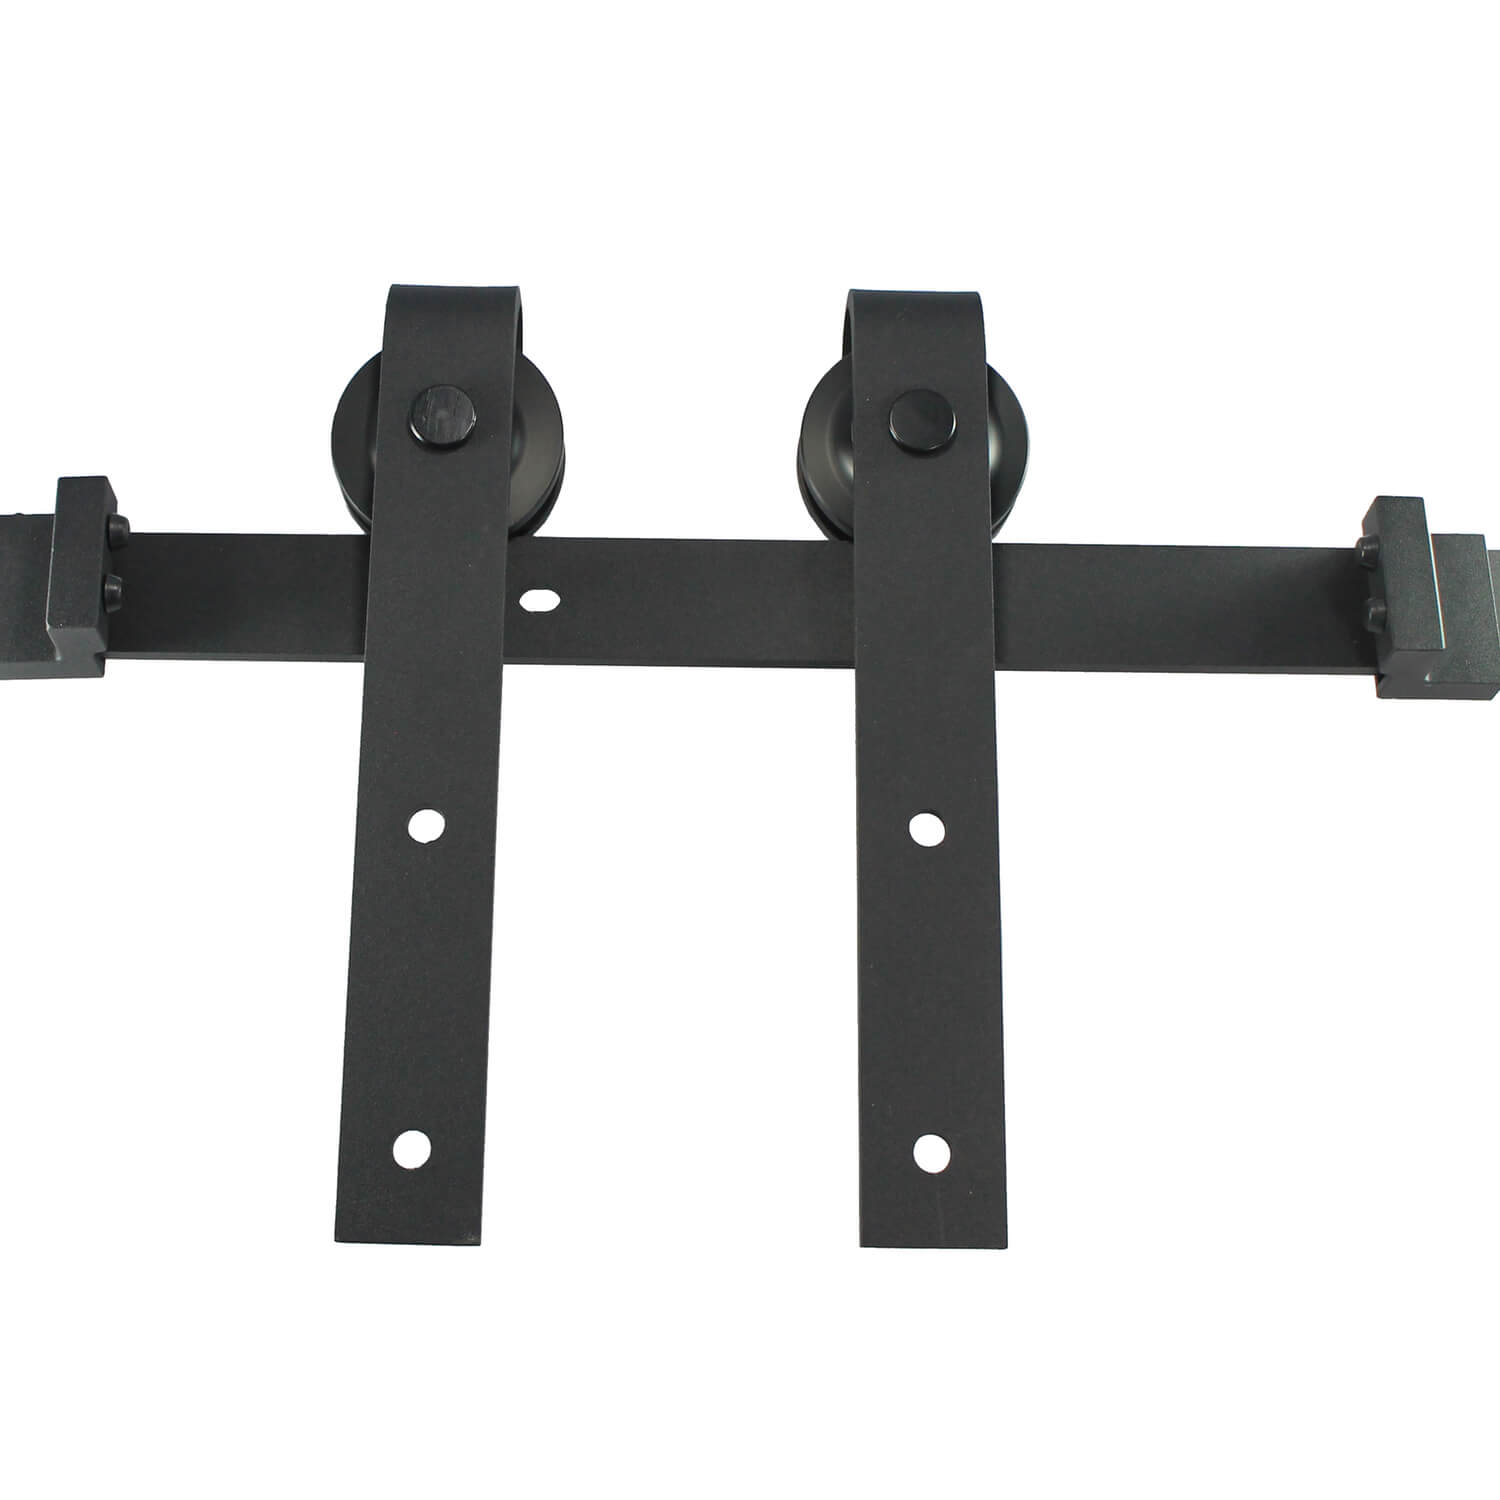 Black - Sliding Barn Door Hardware Kit - Contemporary Style. Kit comes with all the necessary hardware to mount